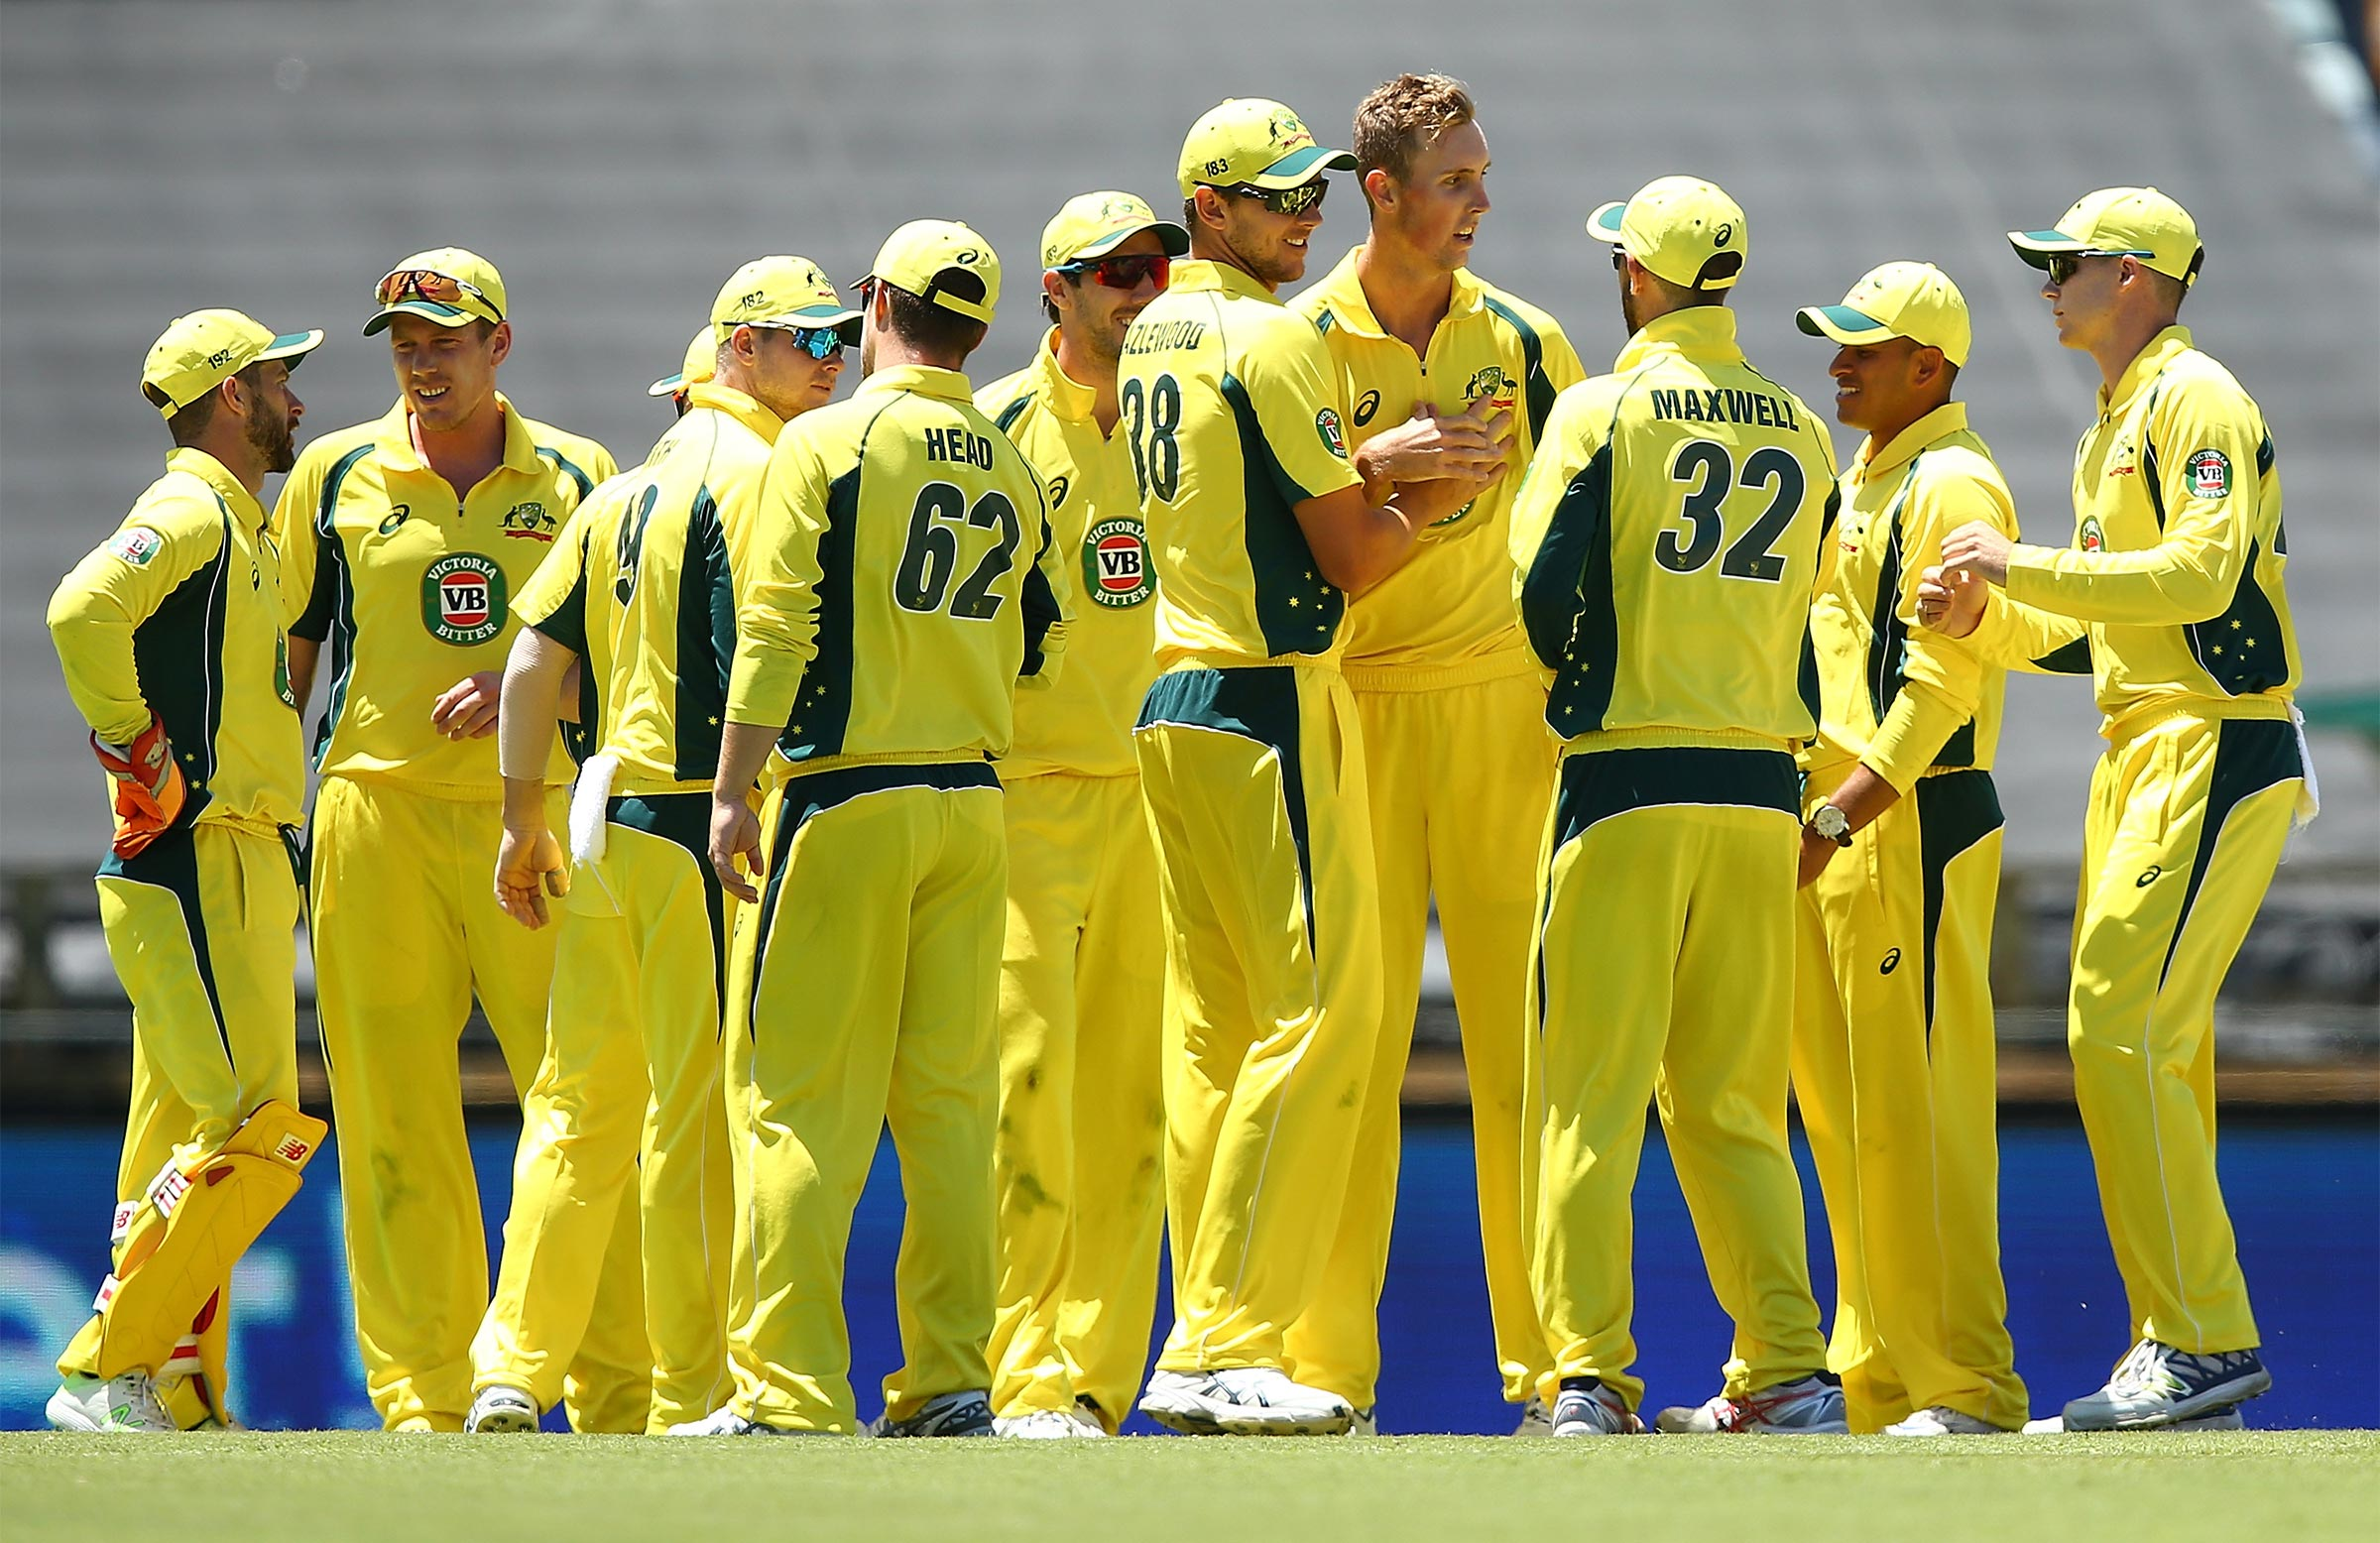 Free Streaming England v South Africa Live Scores Preview Icc World Cup 2011 March 6